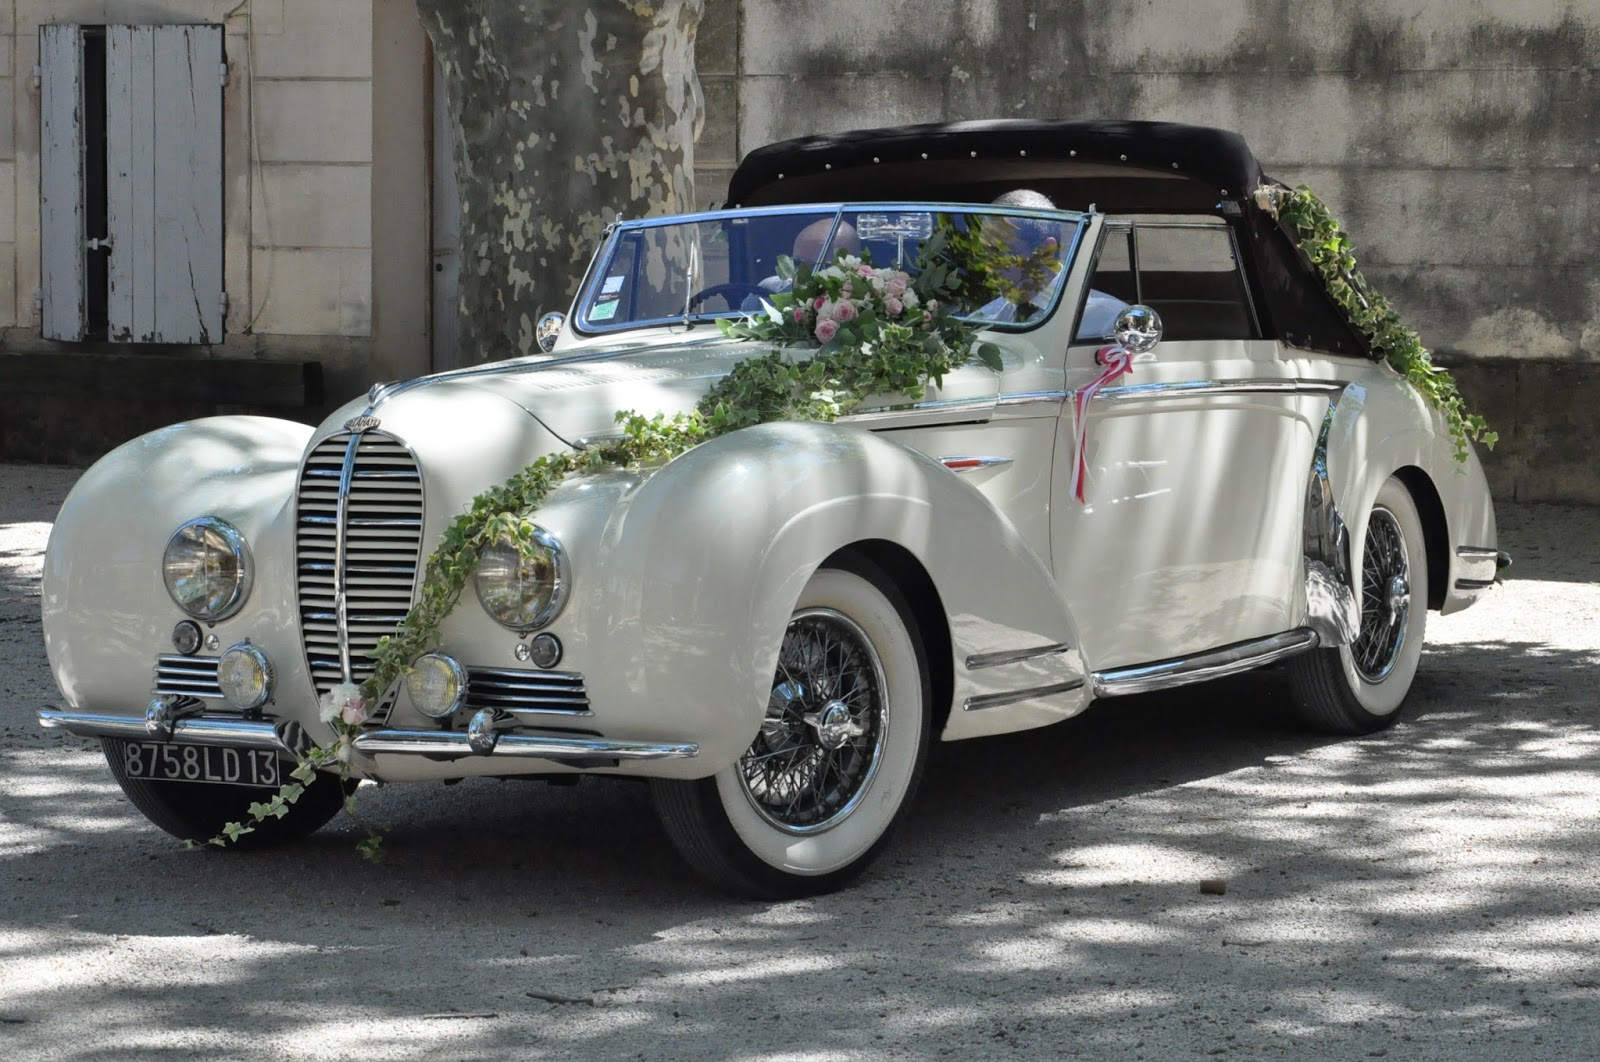 Voiture Mariage On Pinterest Mariage Wedding Cars And Cars